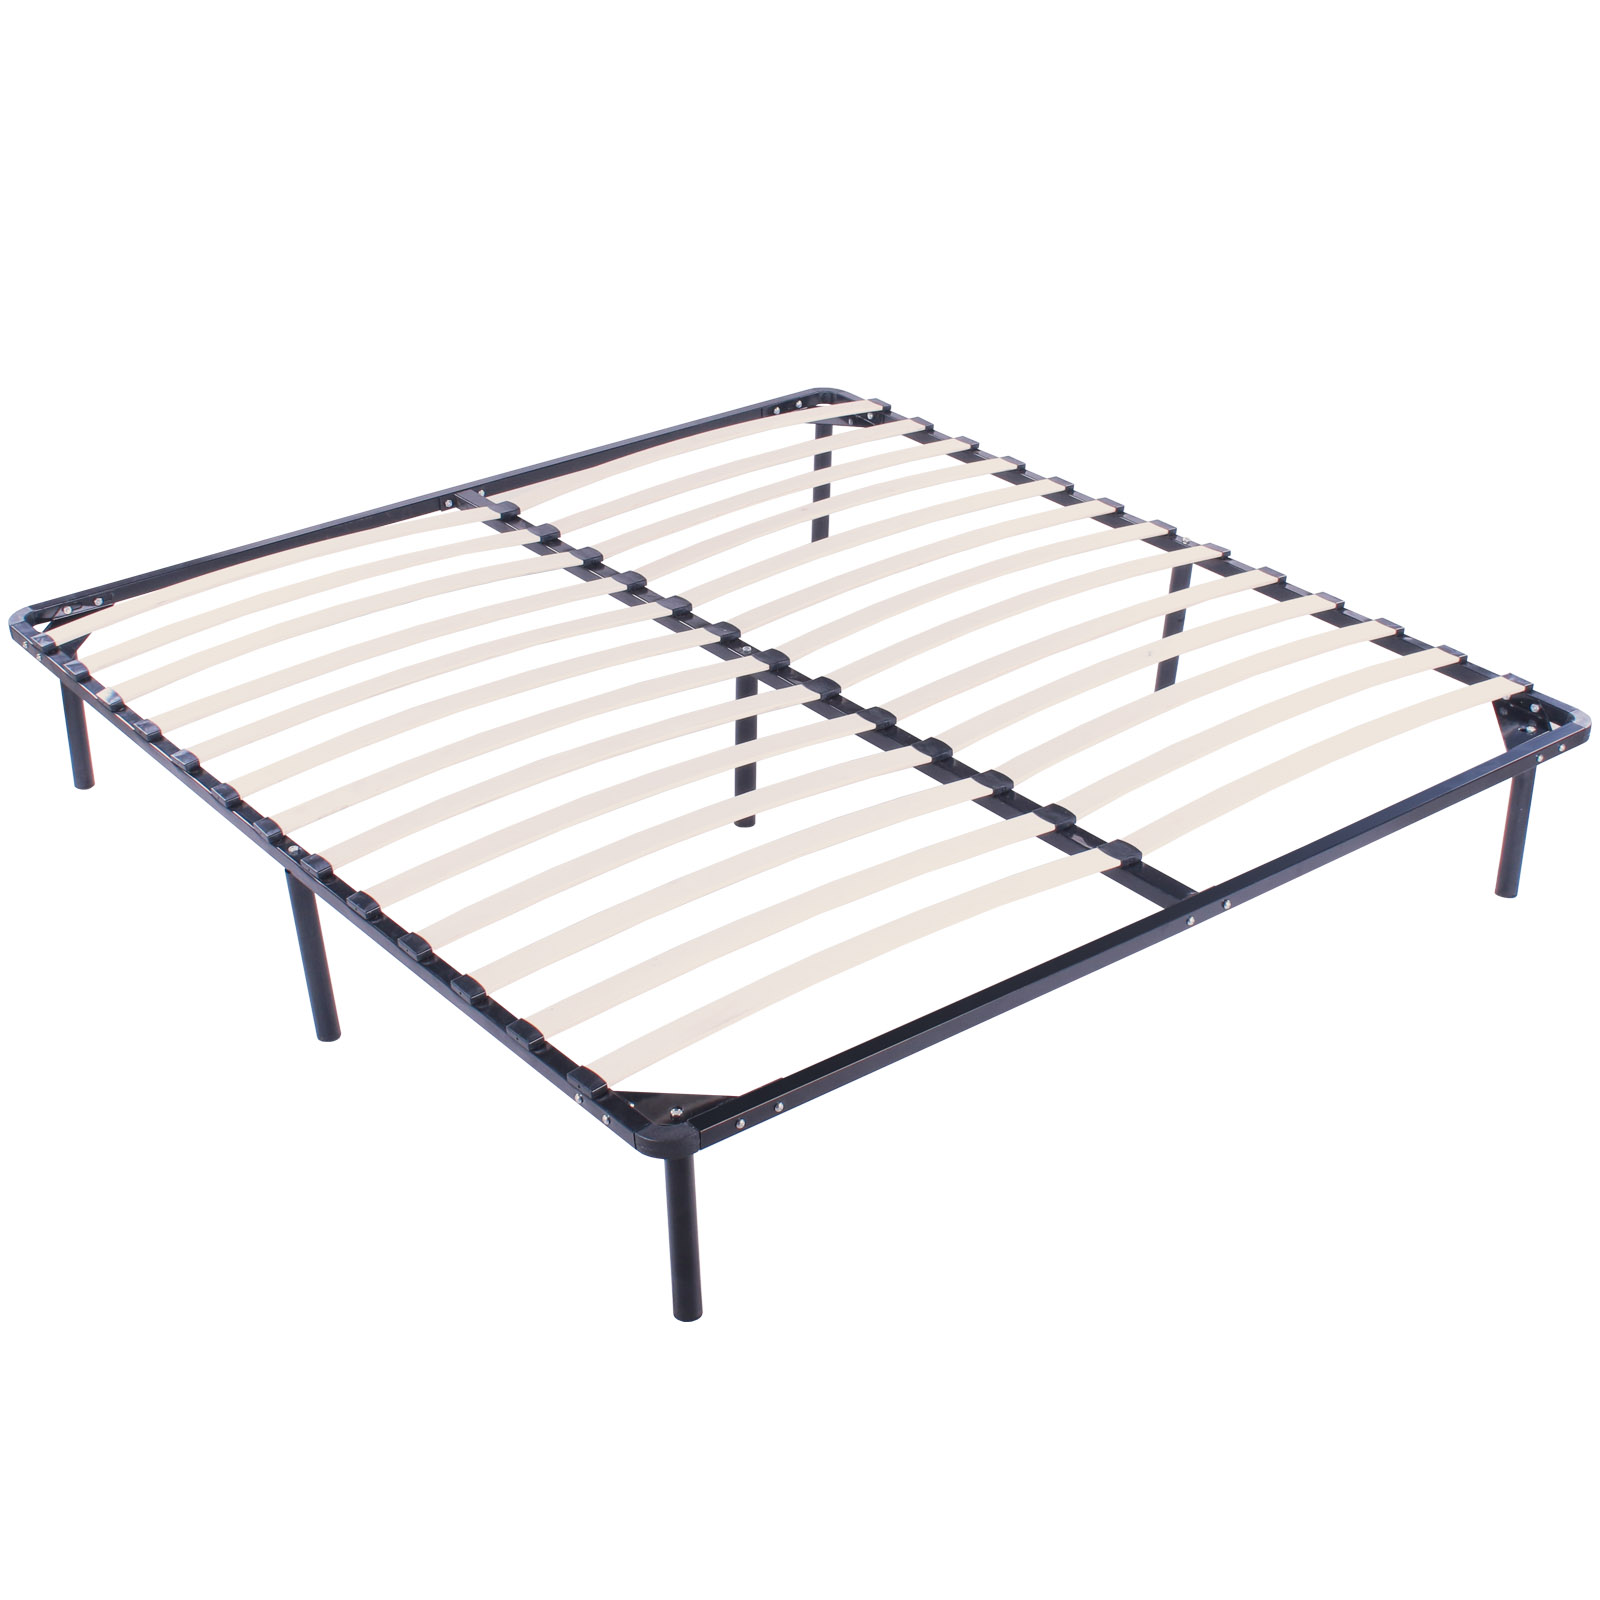 King Size Wood Slats Metal Bed Frame Platform Bedroom